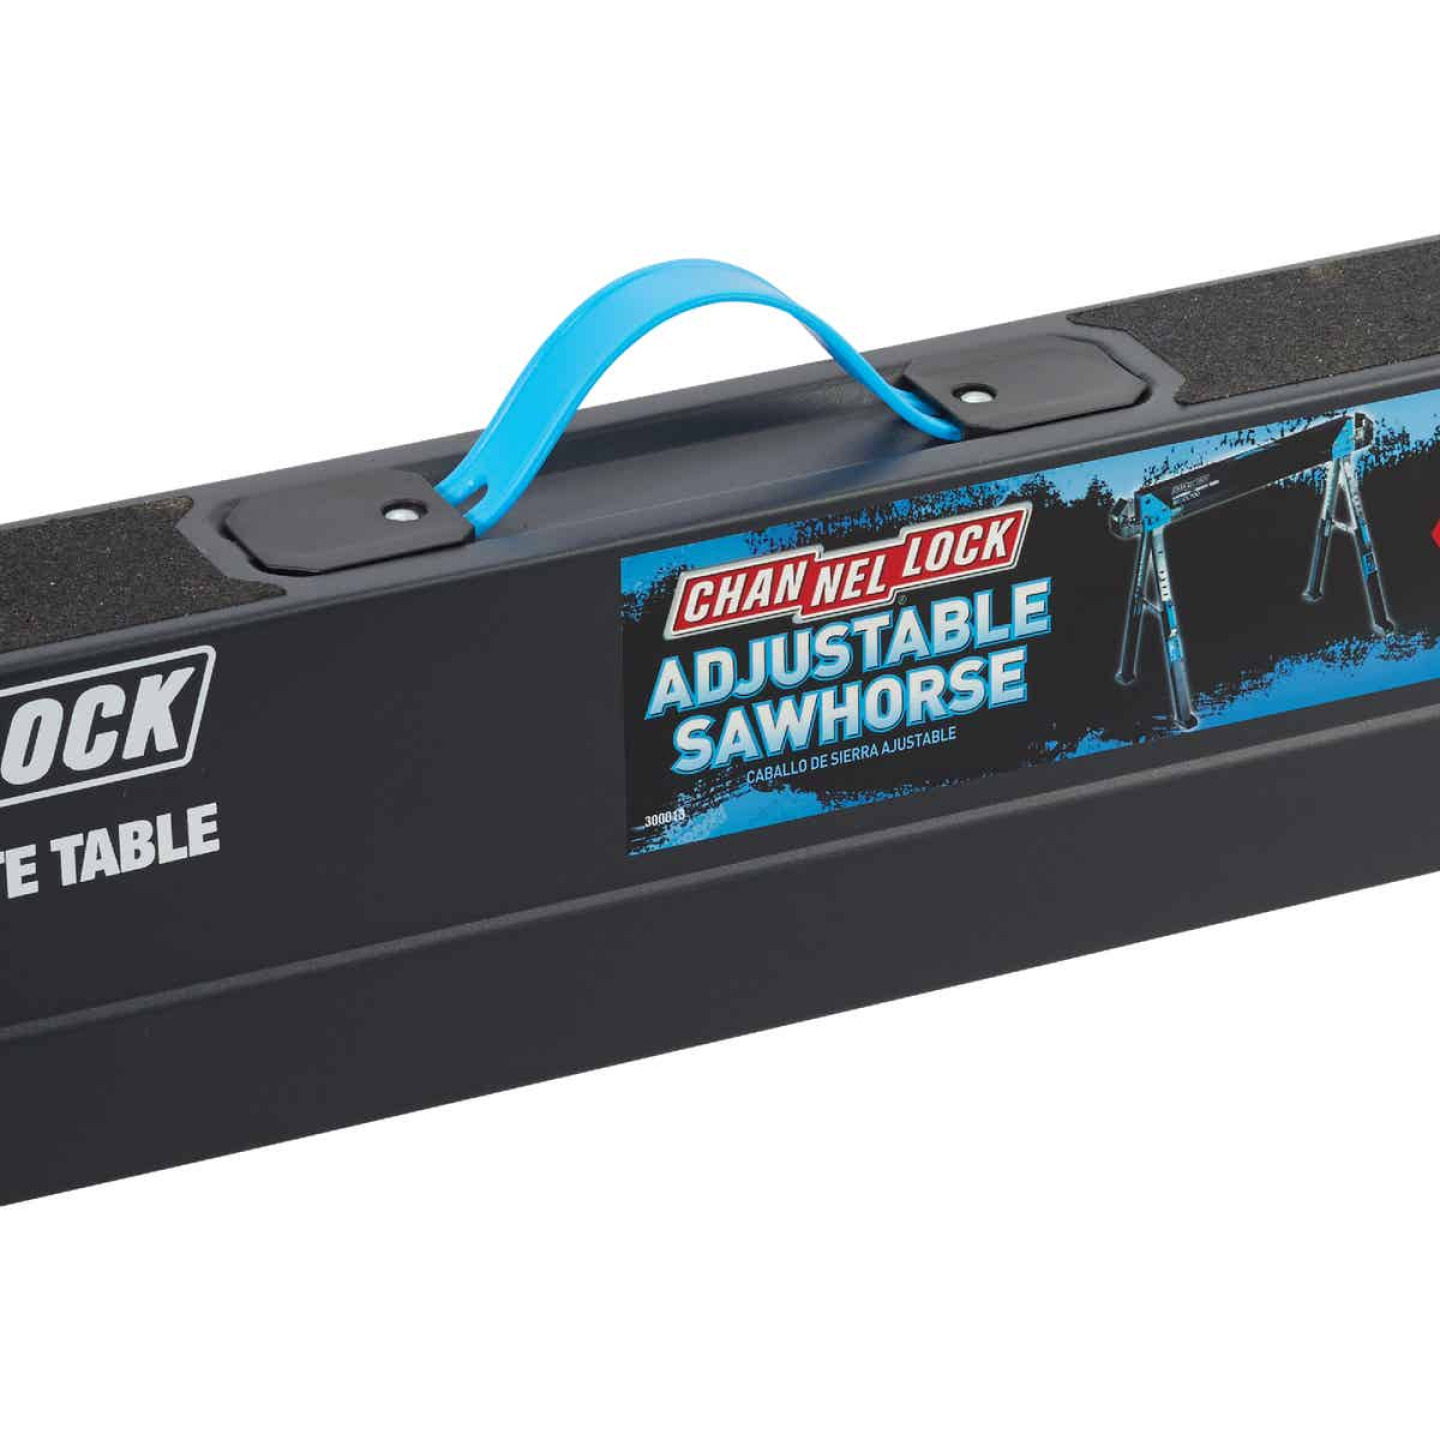 Channellock 39-1/4 to 45-3/4 In. Long Steel Adjustable Sawhorse Jobsite Table, 1300 Lb. Capacity Image 2